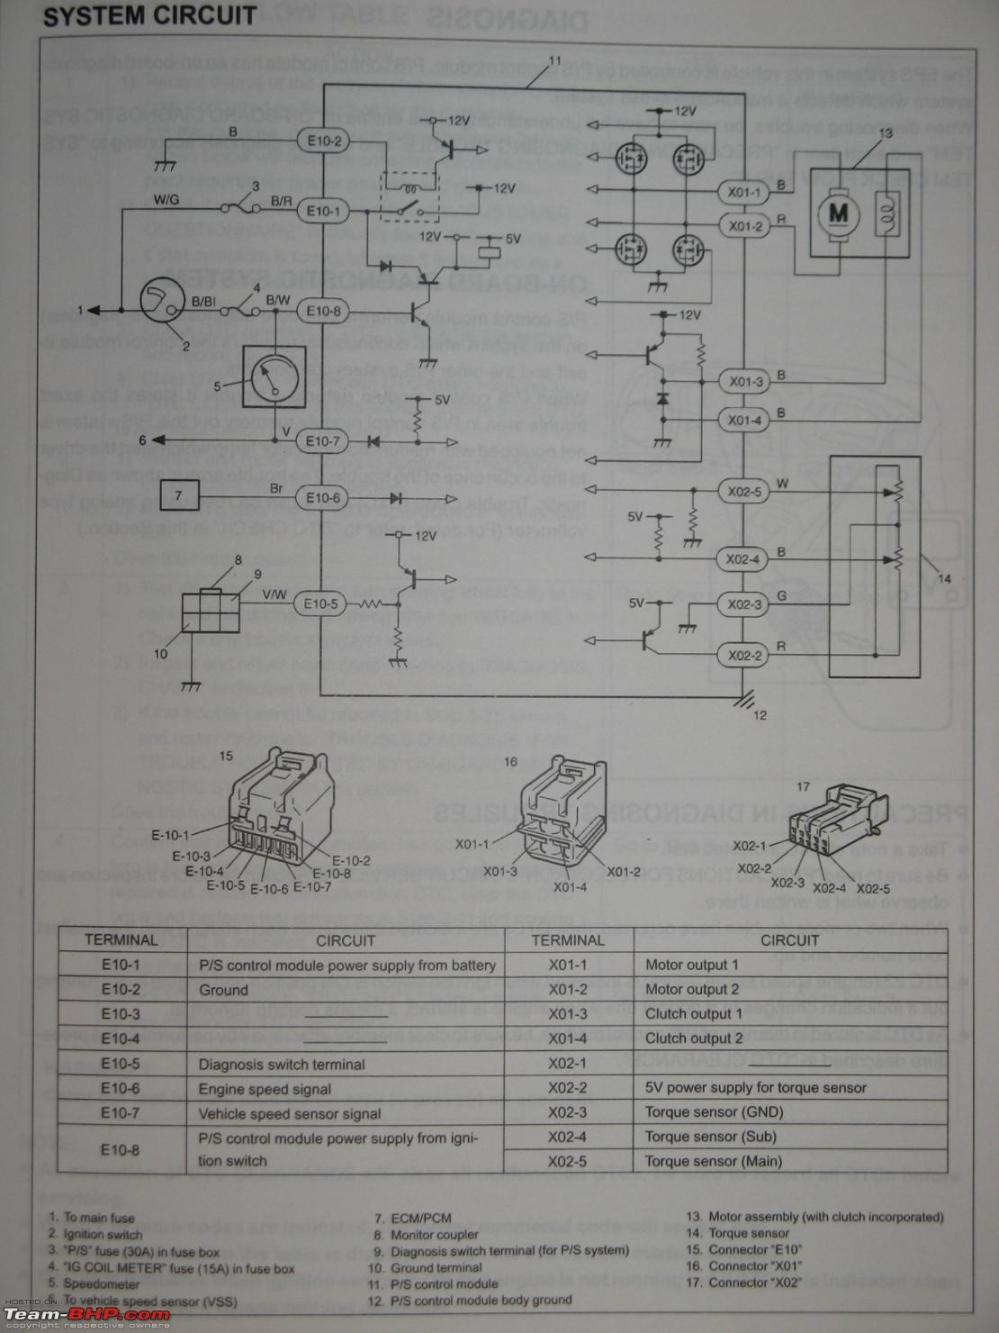 medium resolution of maruti alto electrical wiring diagram pdf 41 wiring diagrams of electrical panel to transformer to disconnect